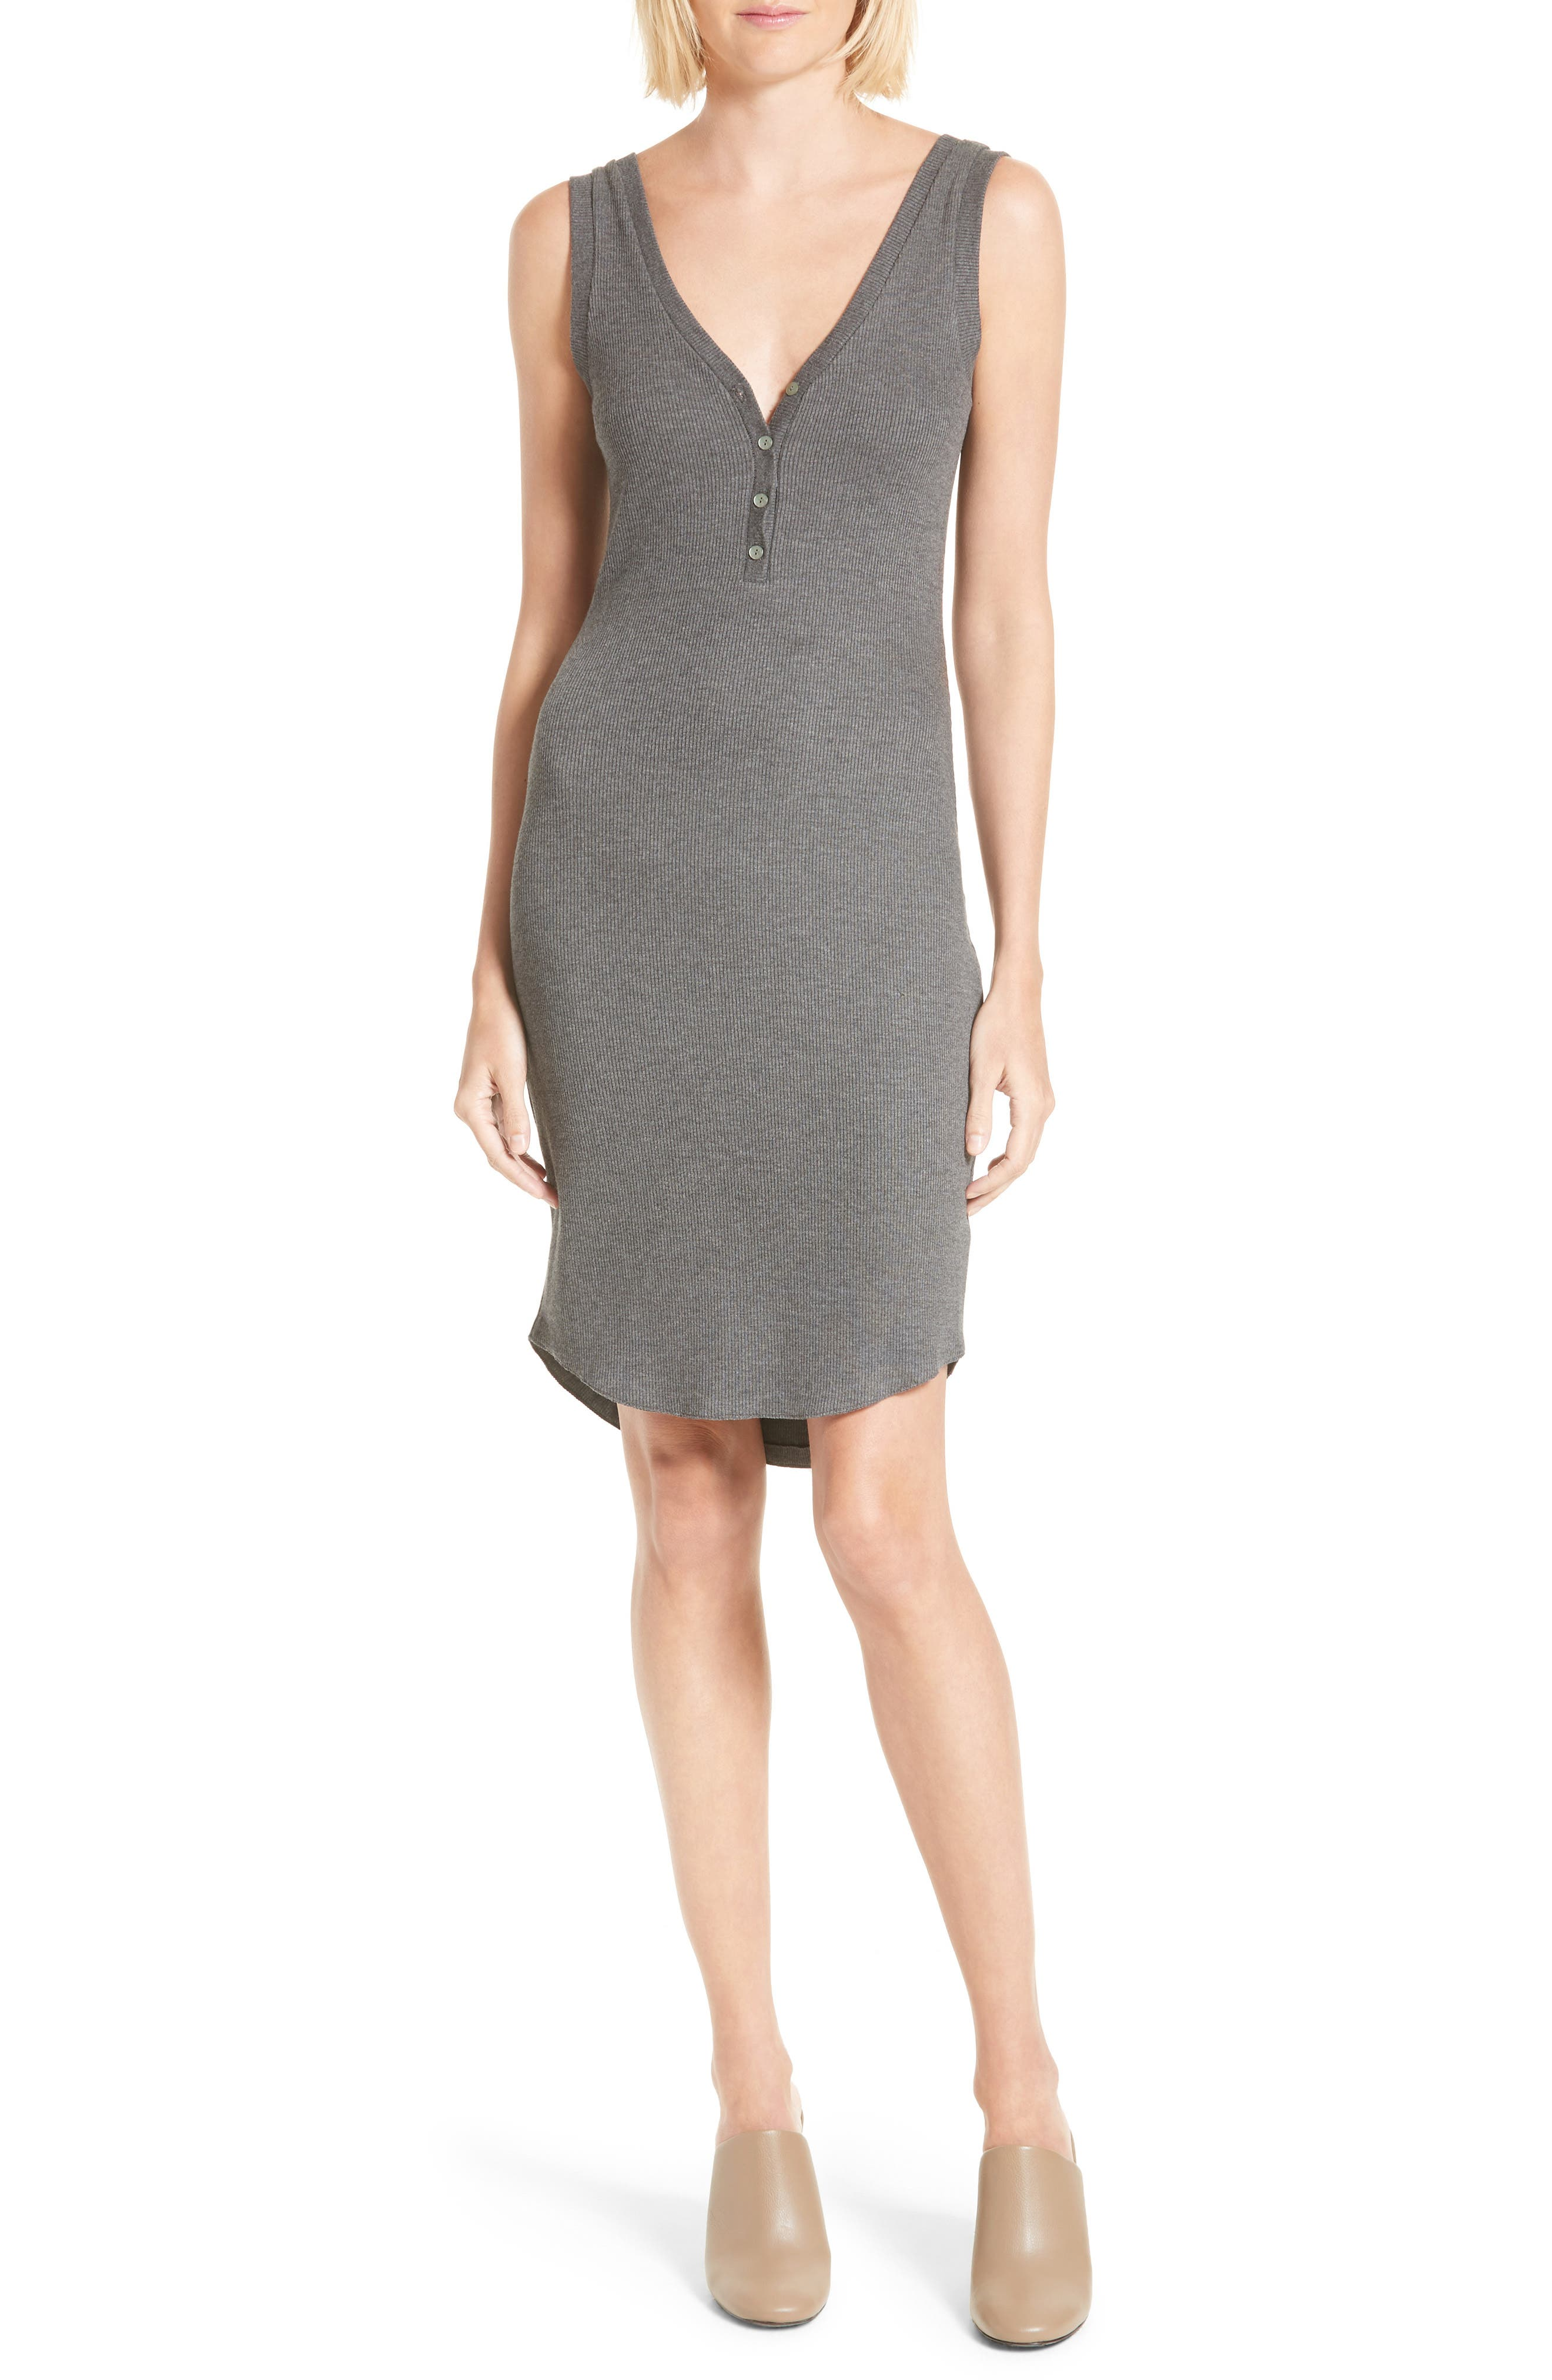 Everly Henley Tank Dress,                         Main,                         color, 031